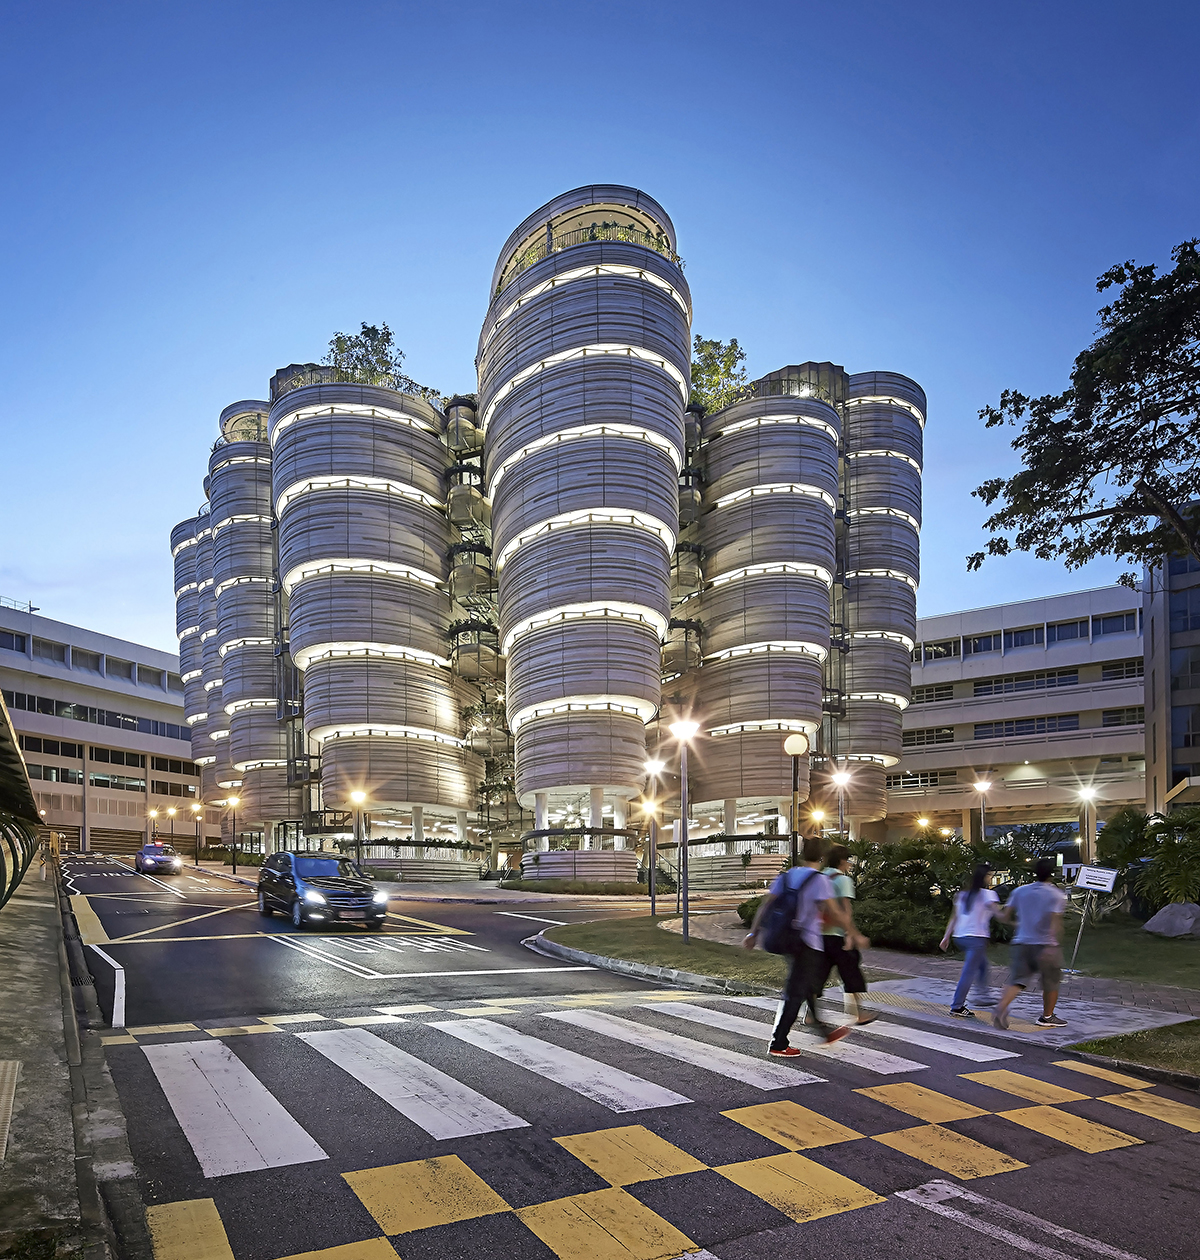 Ntu learning hub thomas heatherwick ssphere for Online architects